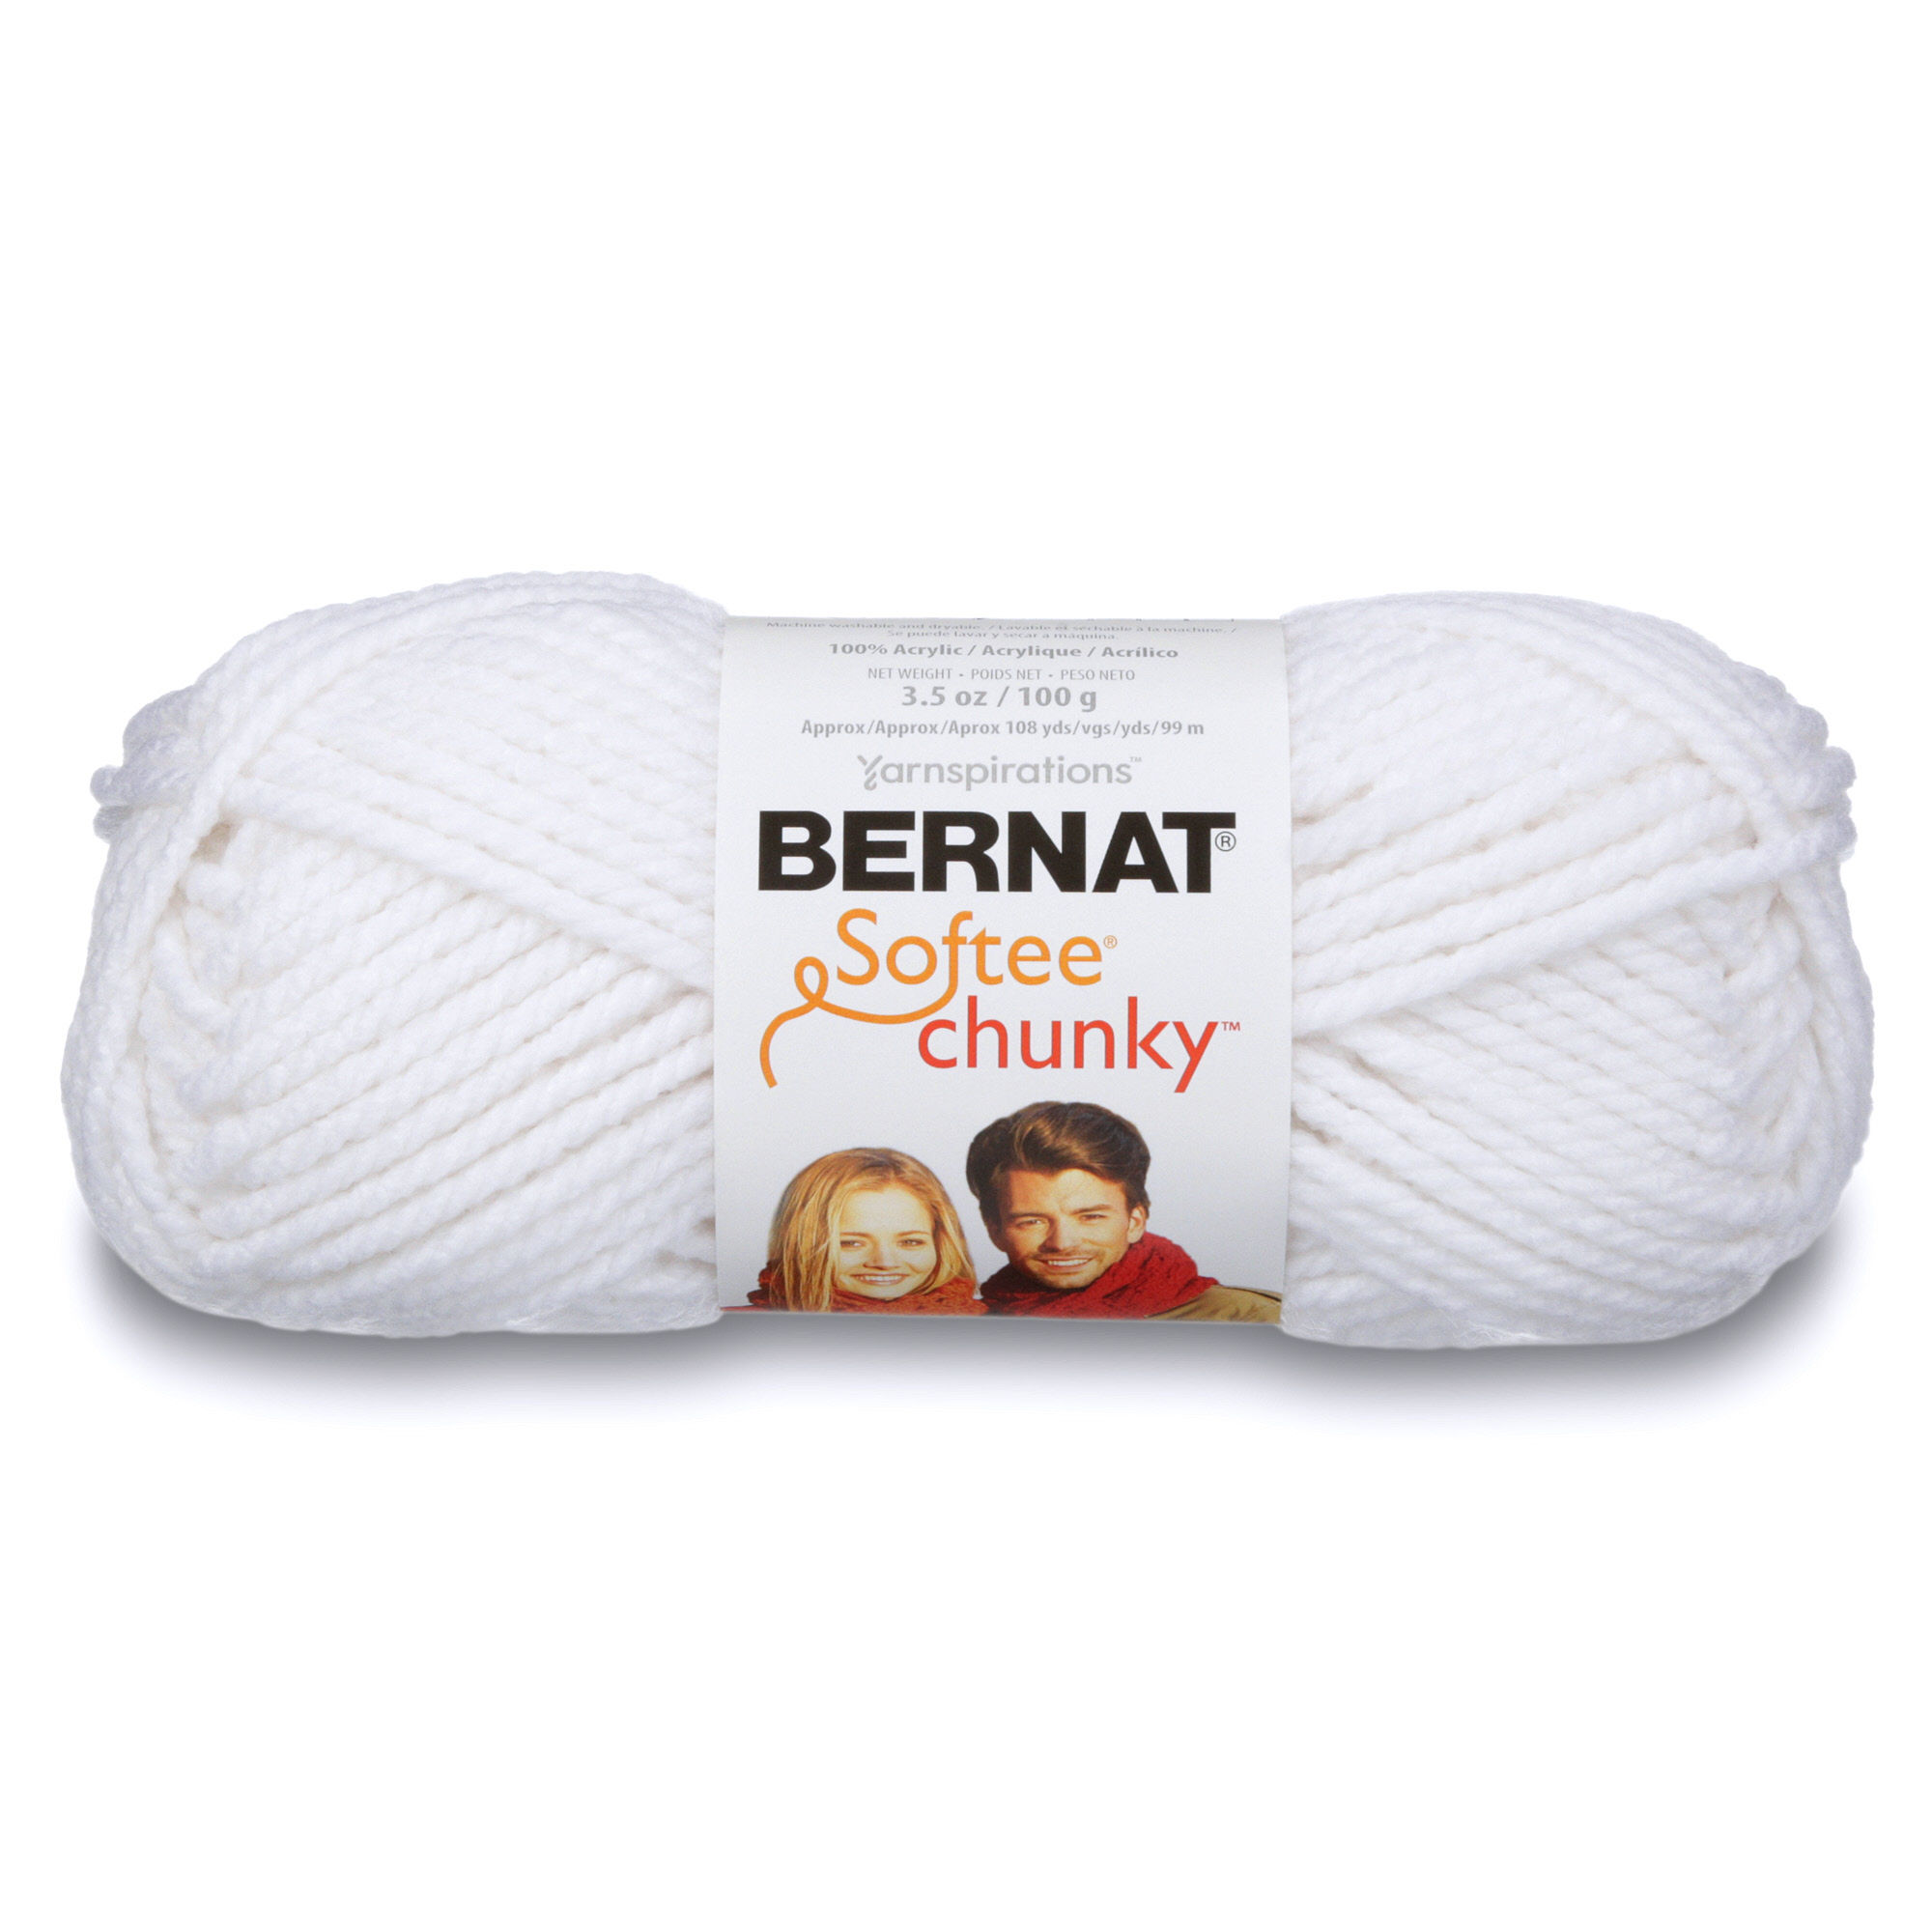 Bernat Acrylic Softee Chunky Redwood Yarn, 1 Each